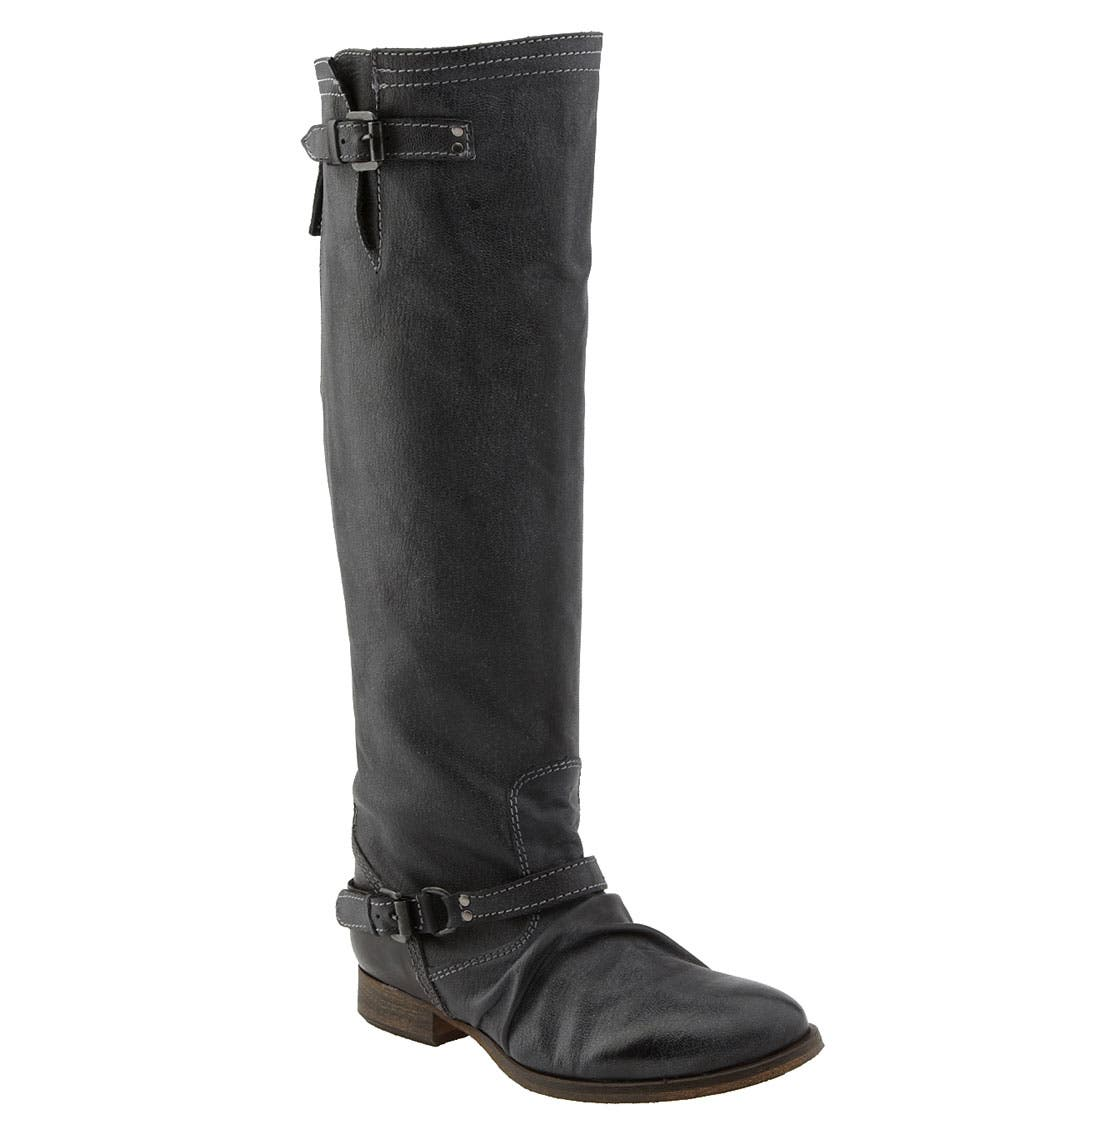 Main Image - Steve Madden 'Roady' Tall Boot